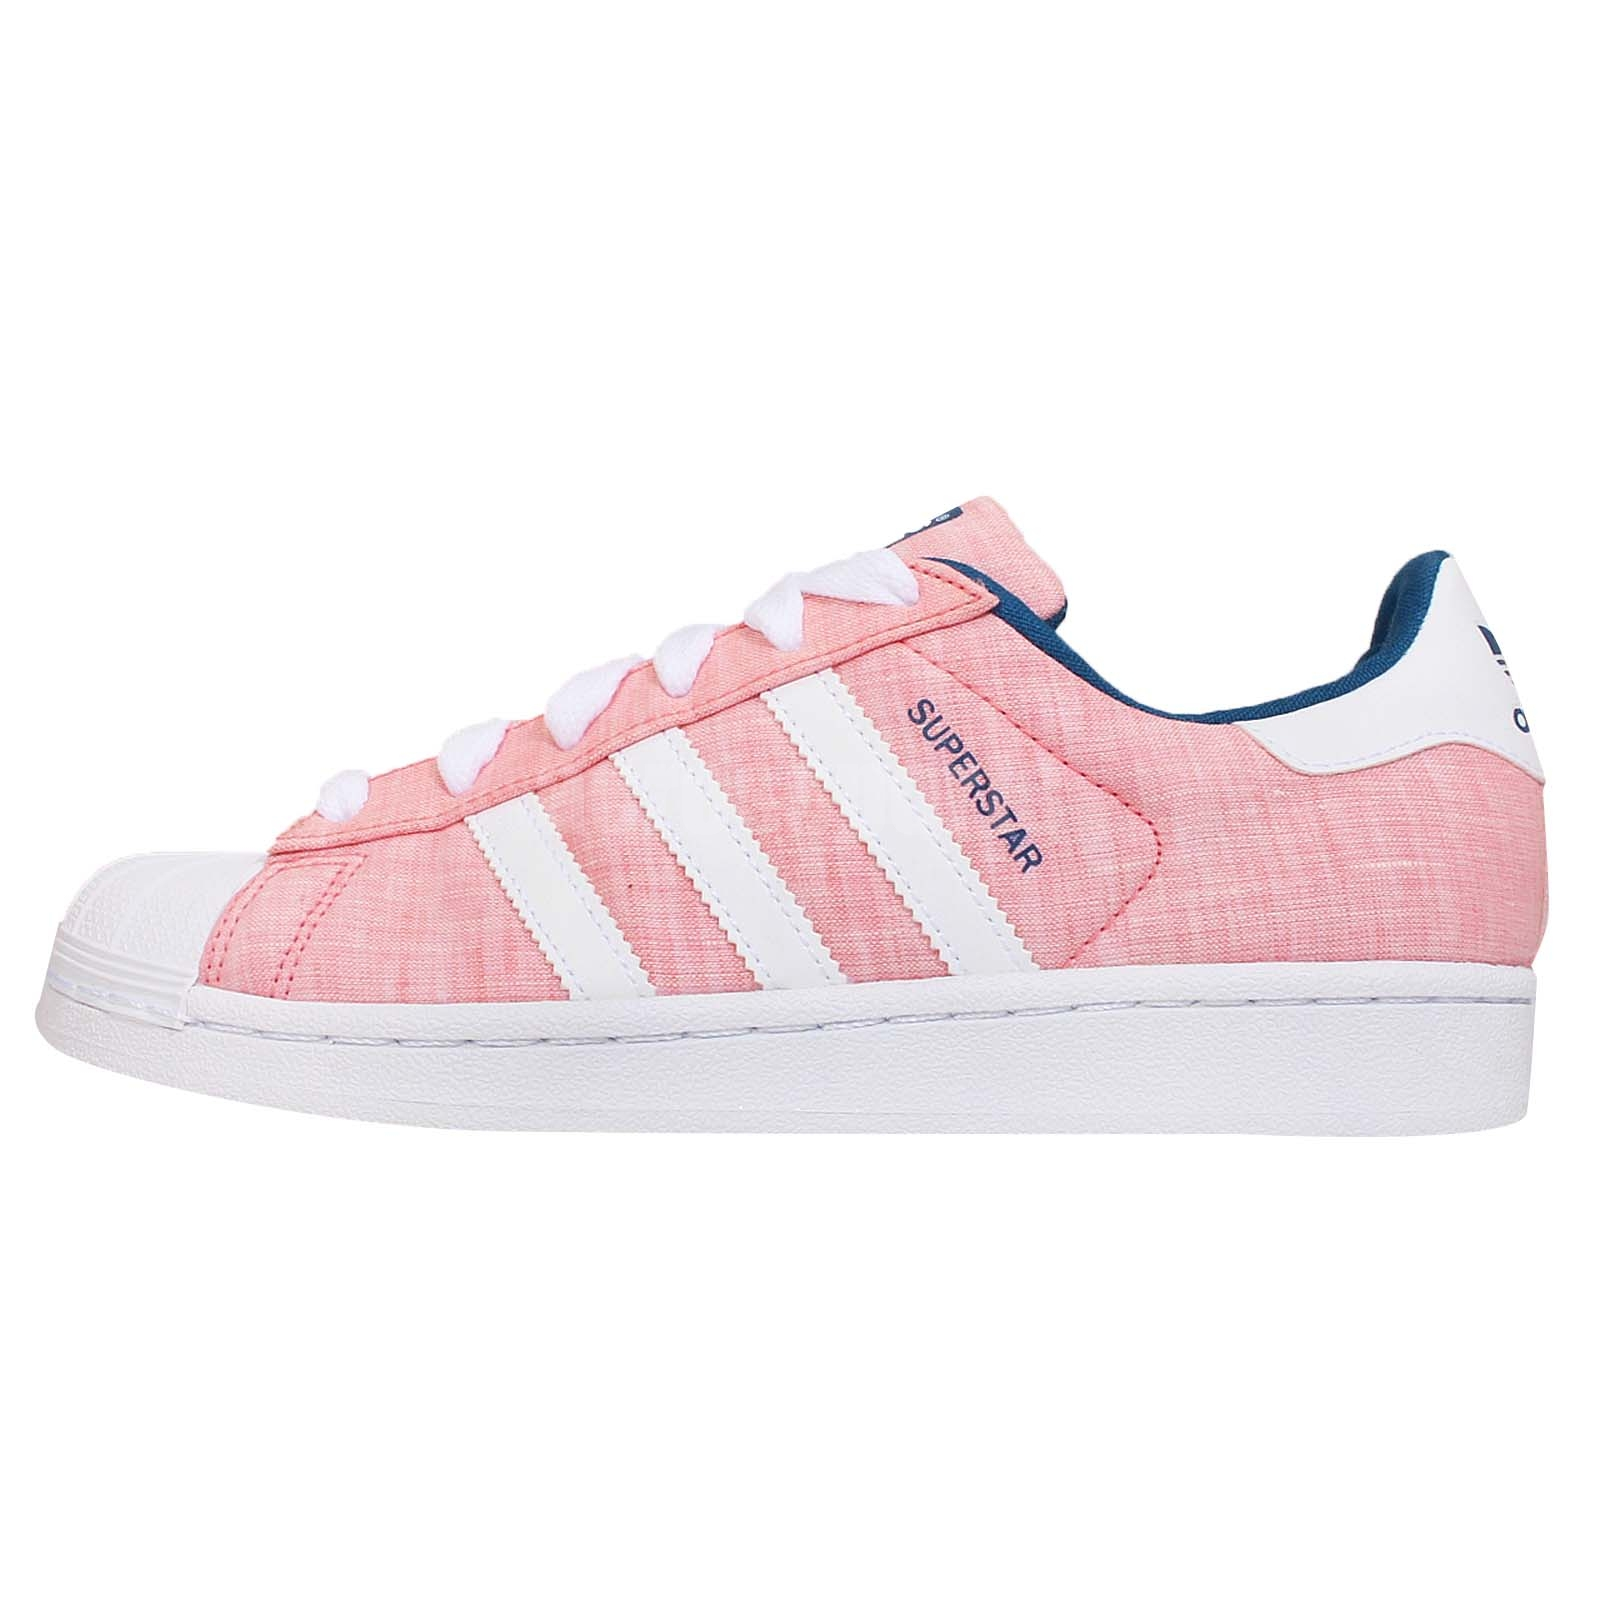 adidas originals superstar w pink blue womens classic. Black Bedroom Furniture Sets. Home Design Ideas